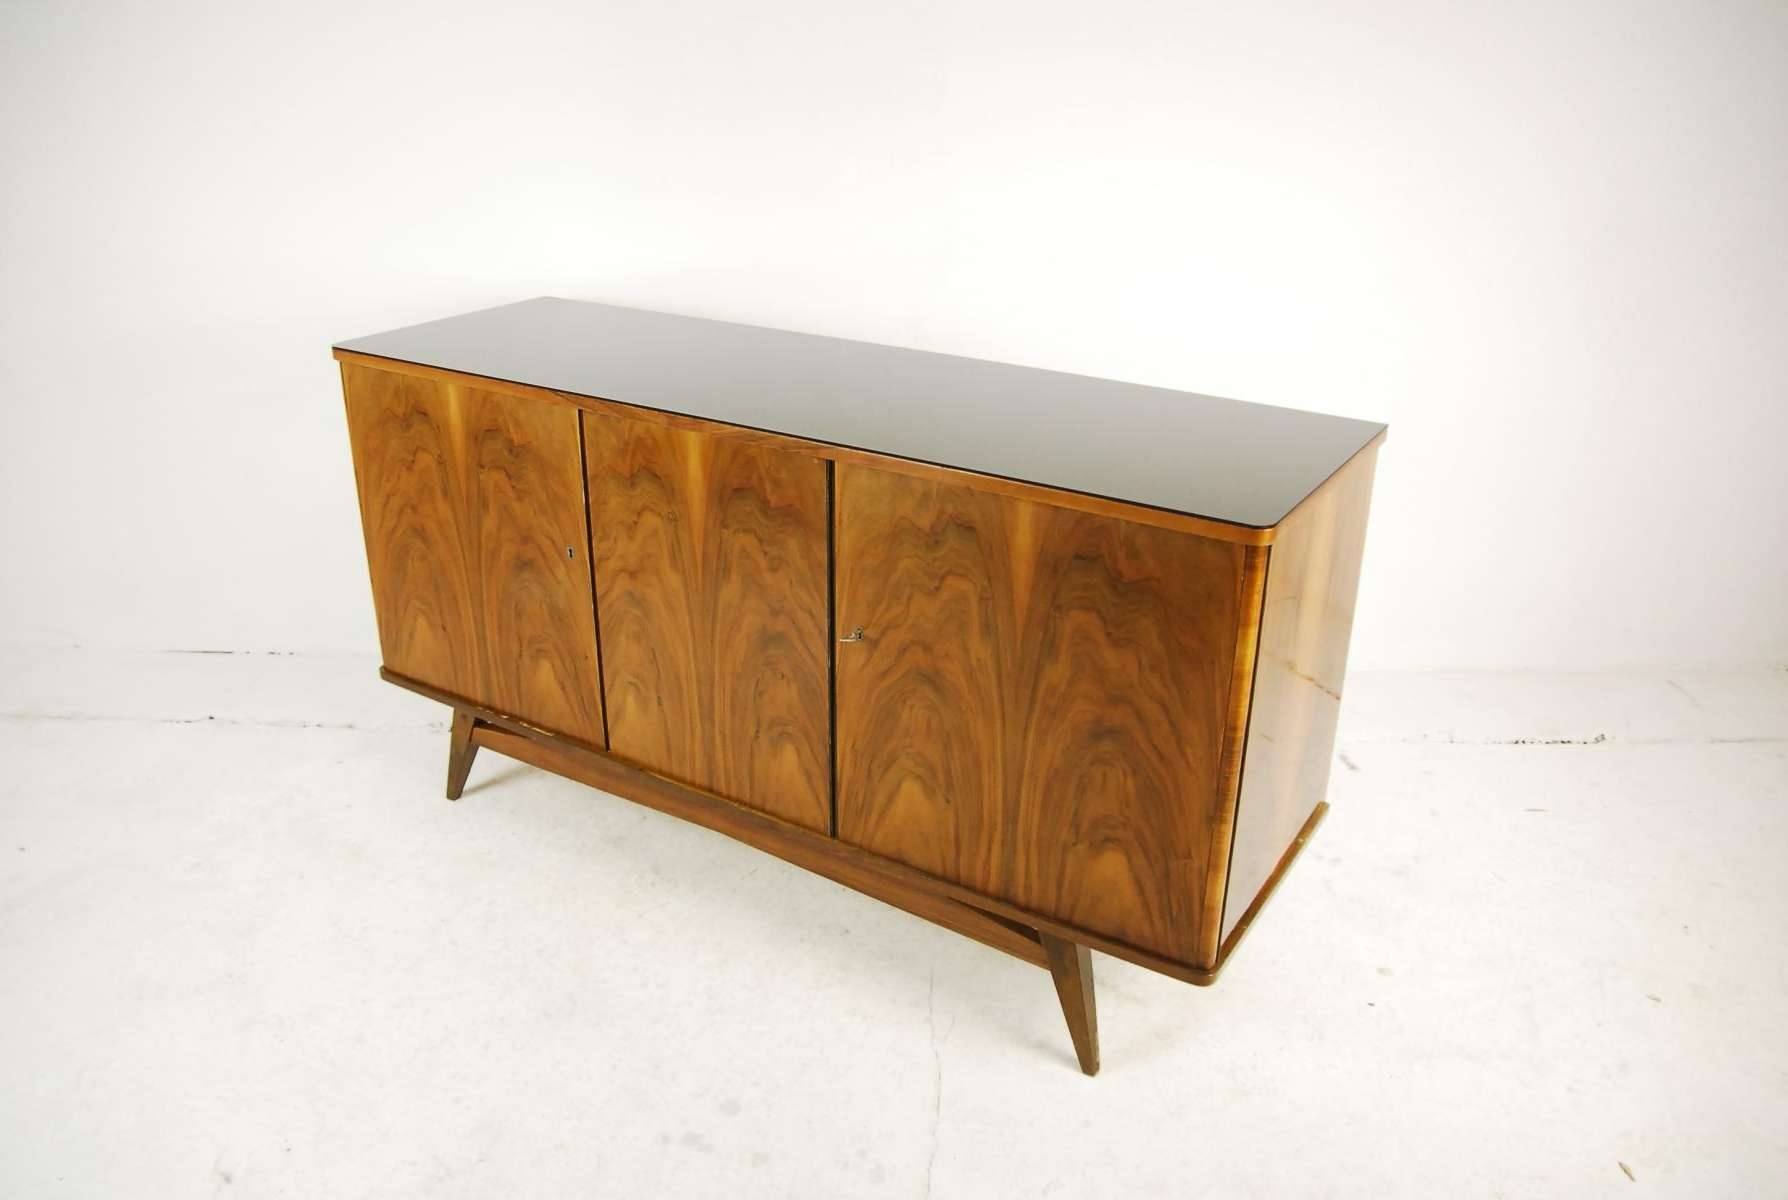 Beech Sideboard From Lodz Furniture Factory, 1960S For Sale At Pamono Throughout Beech Sideboards (View 2 of 20)